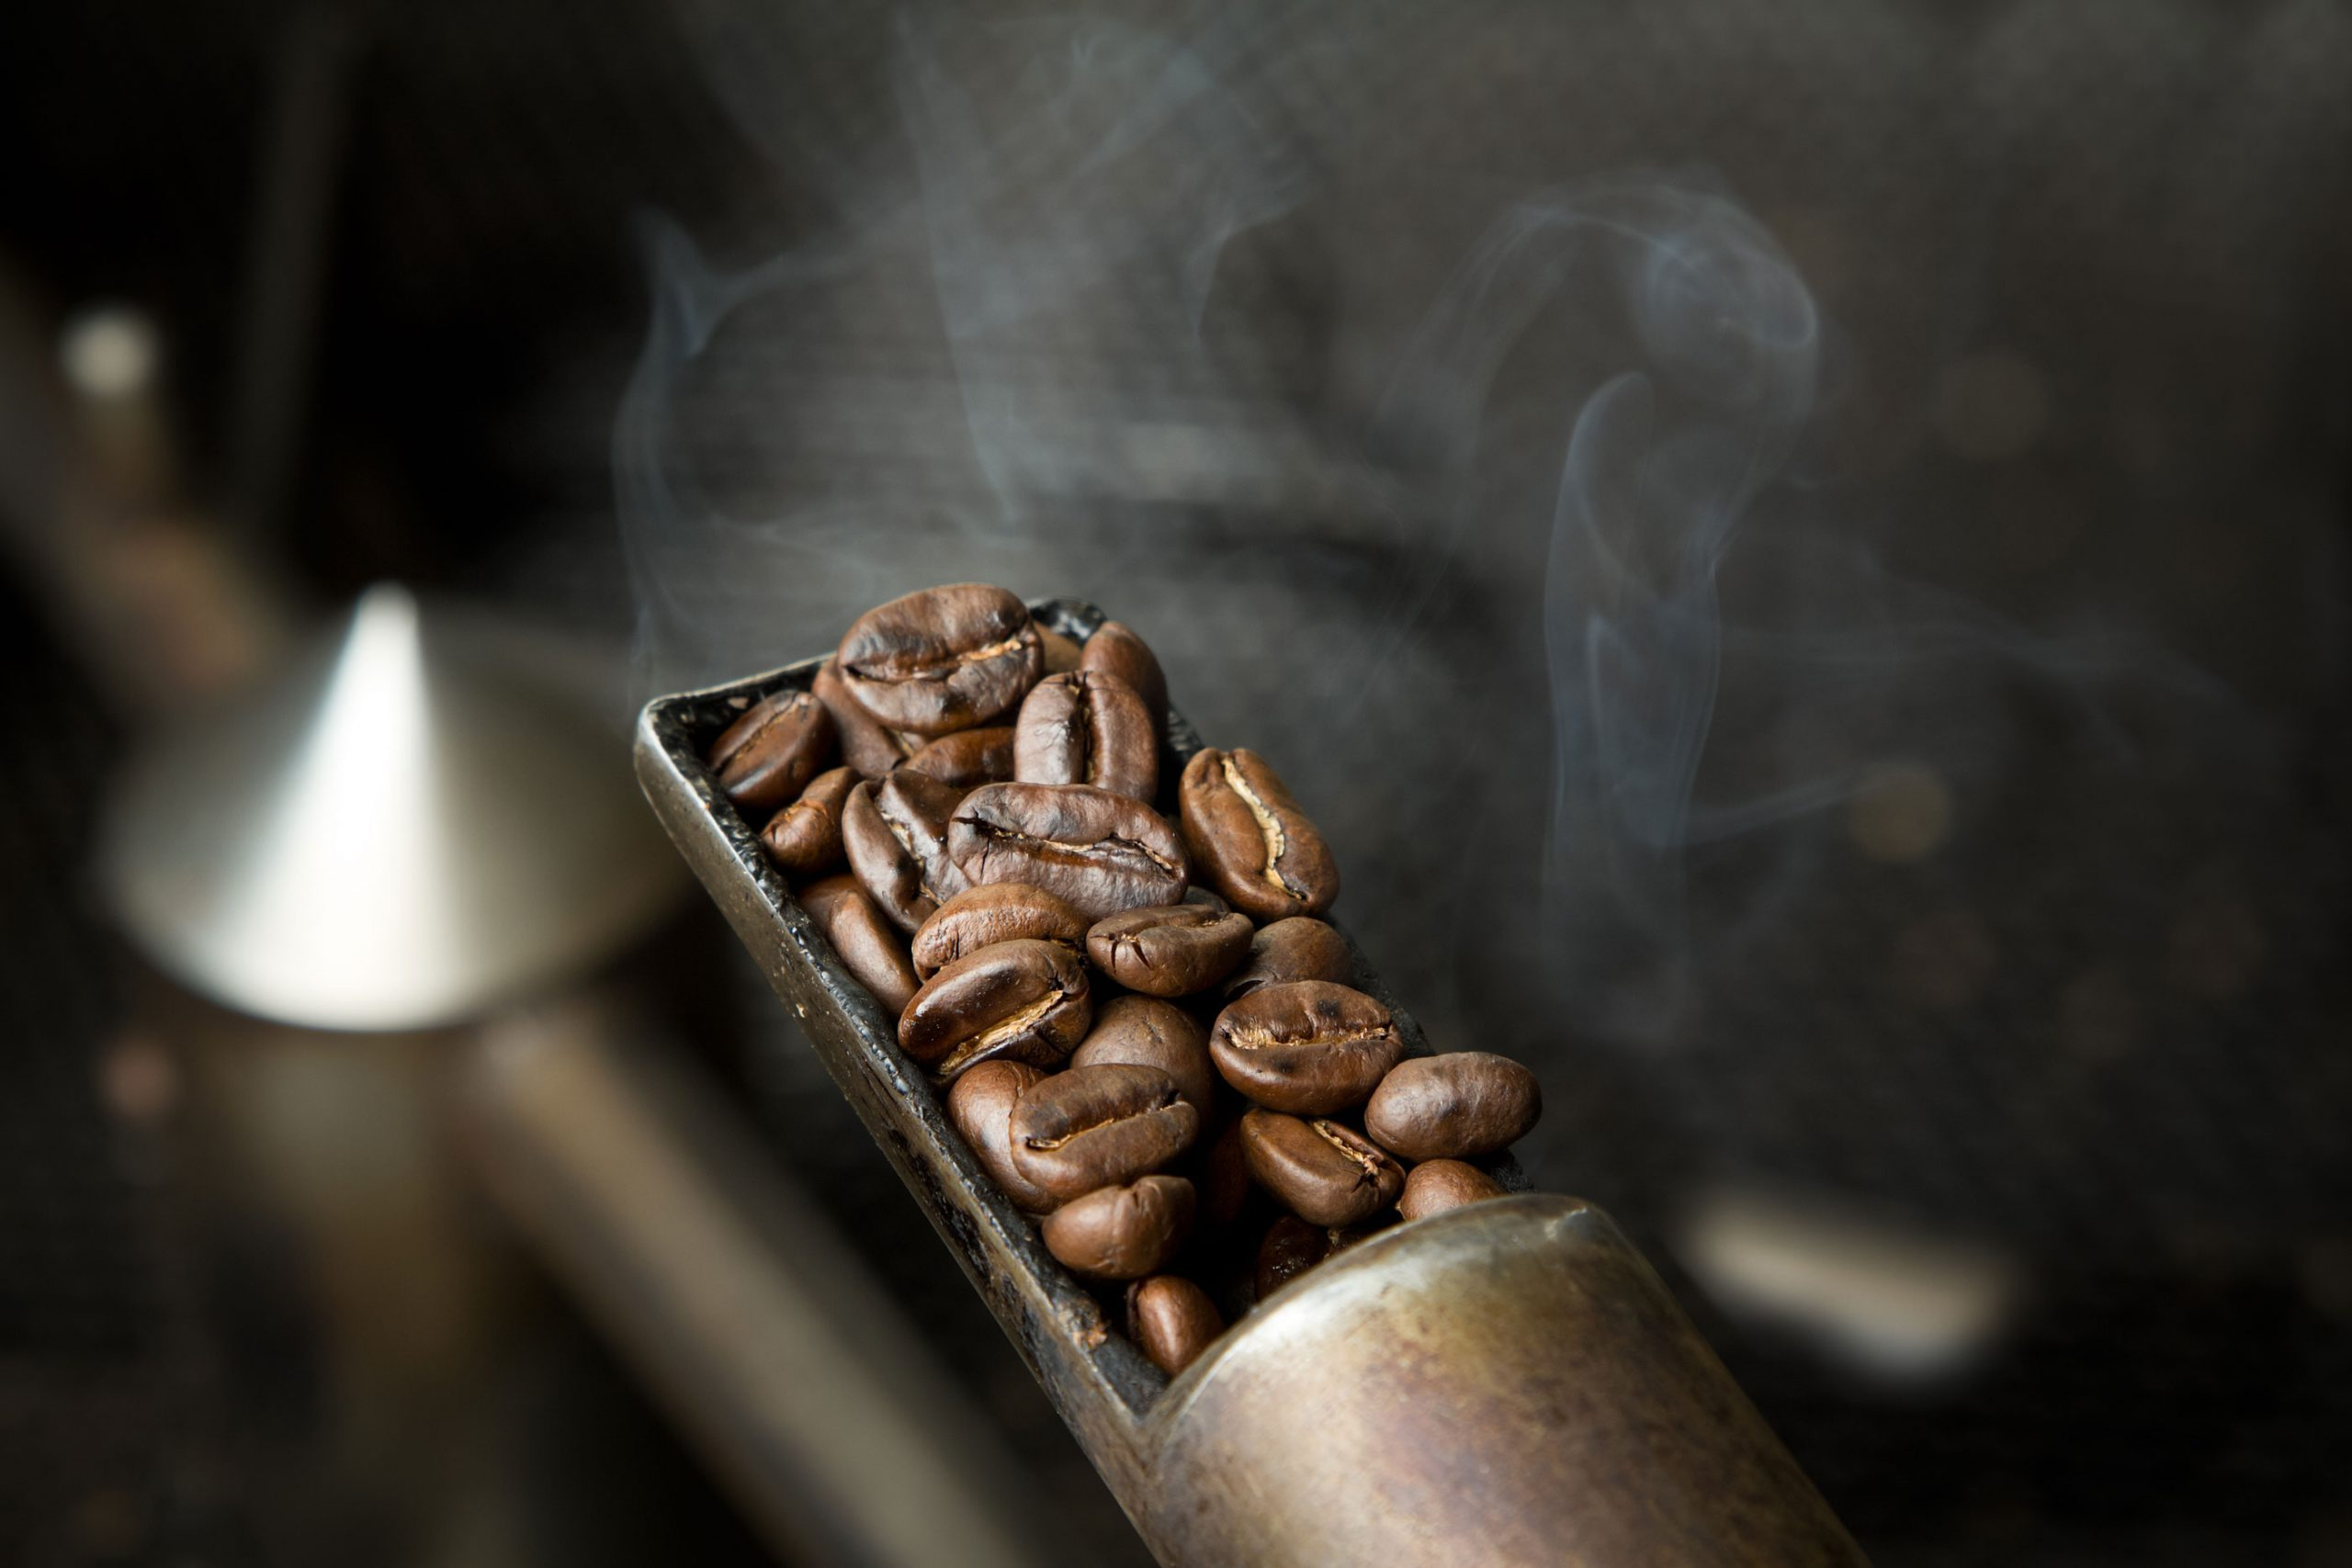 A small scoop of freshly roasted coffee beans.